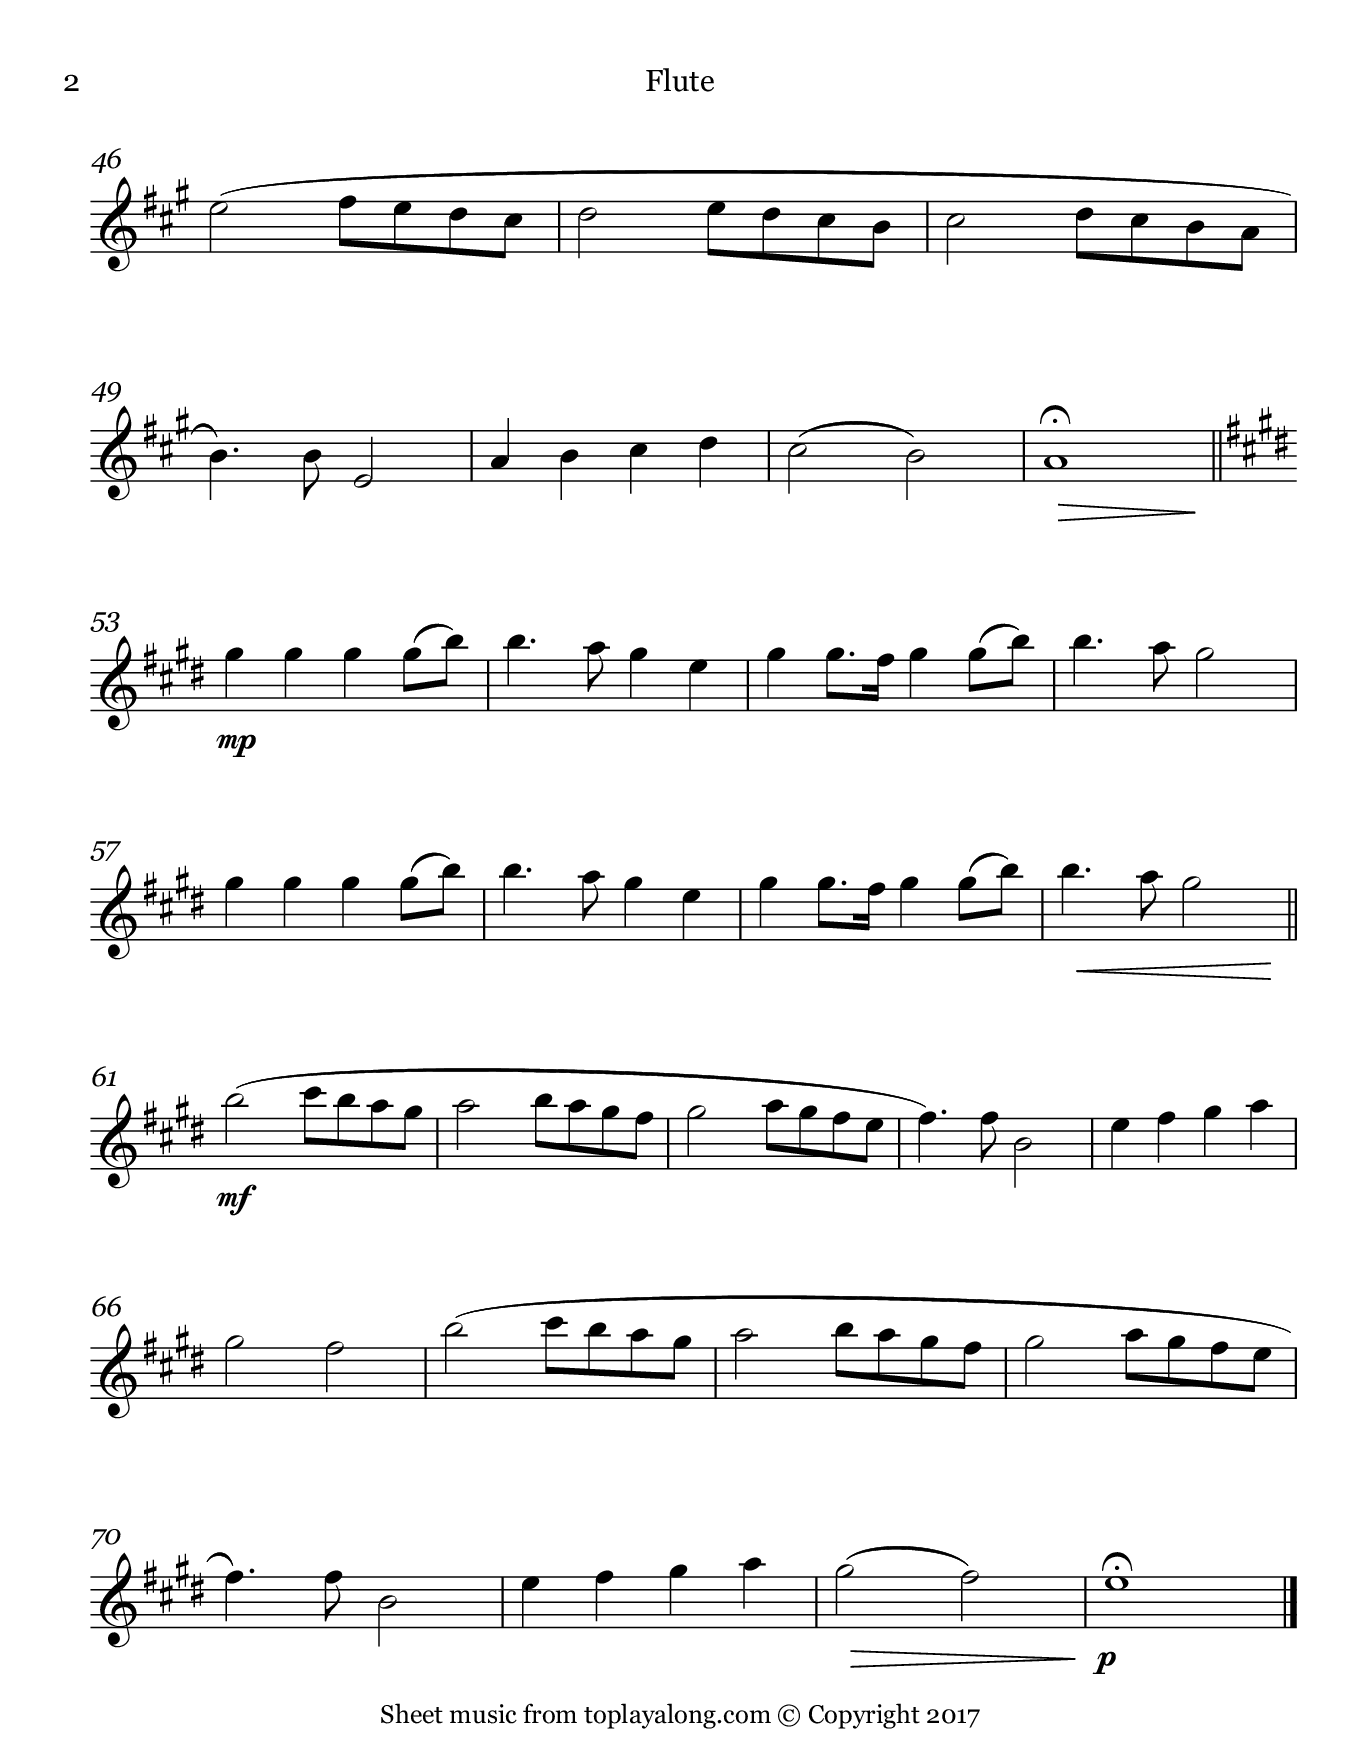 Noël d'enfants by Fauré. Sheet music for Flute, page 2.